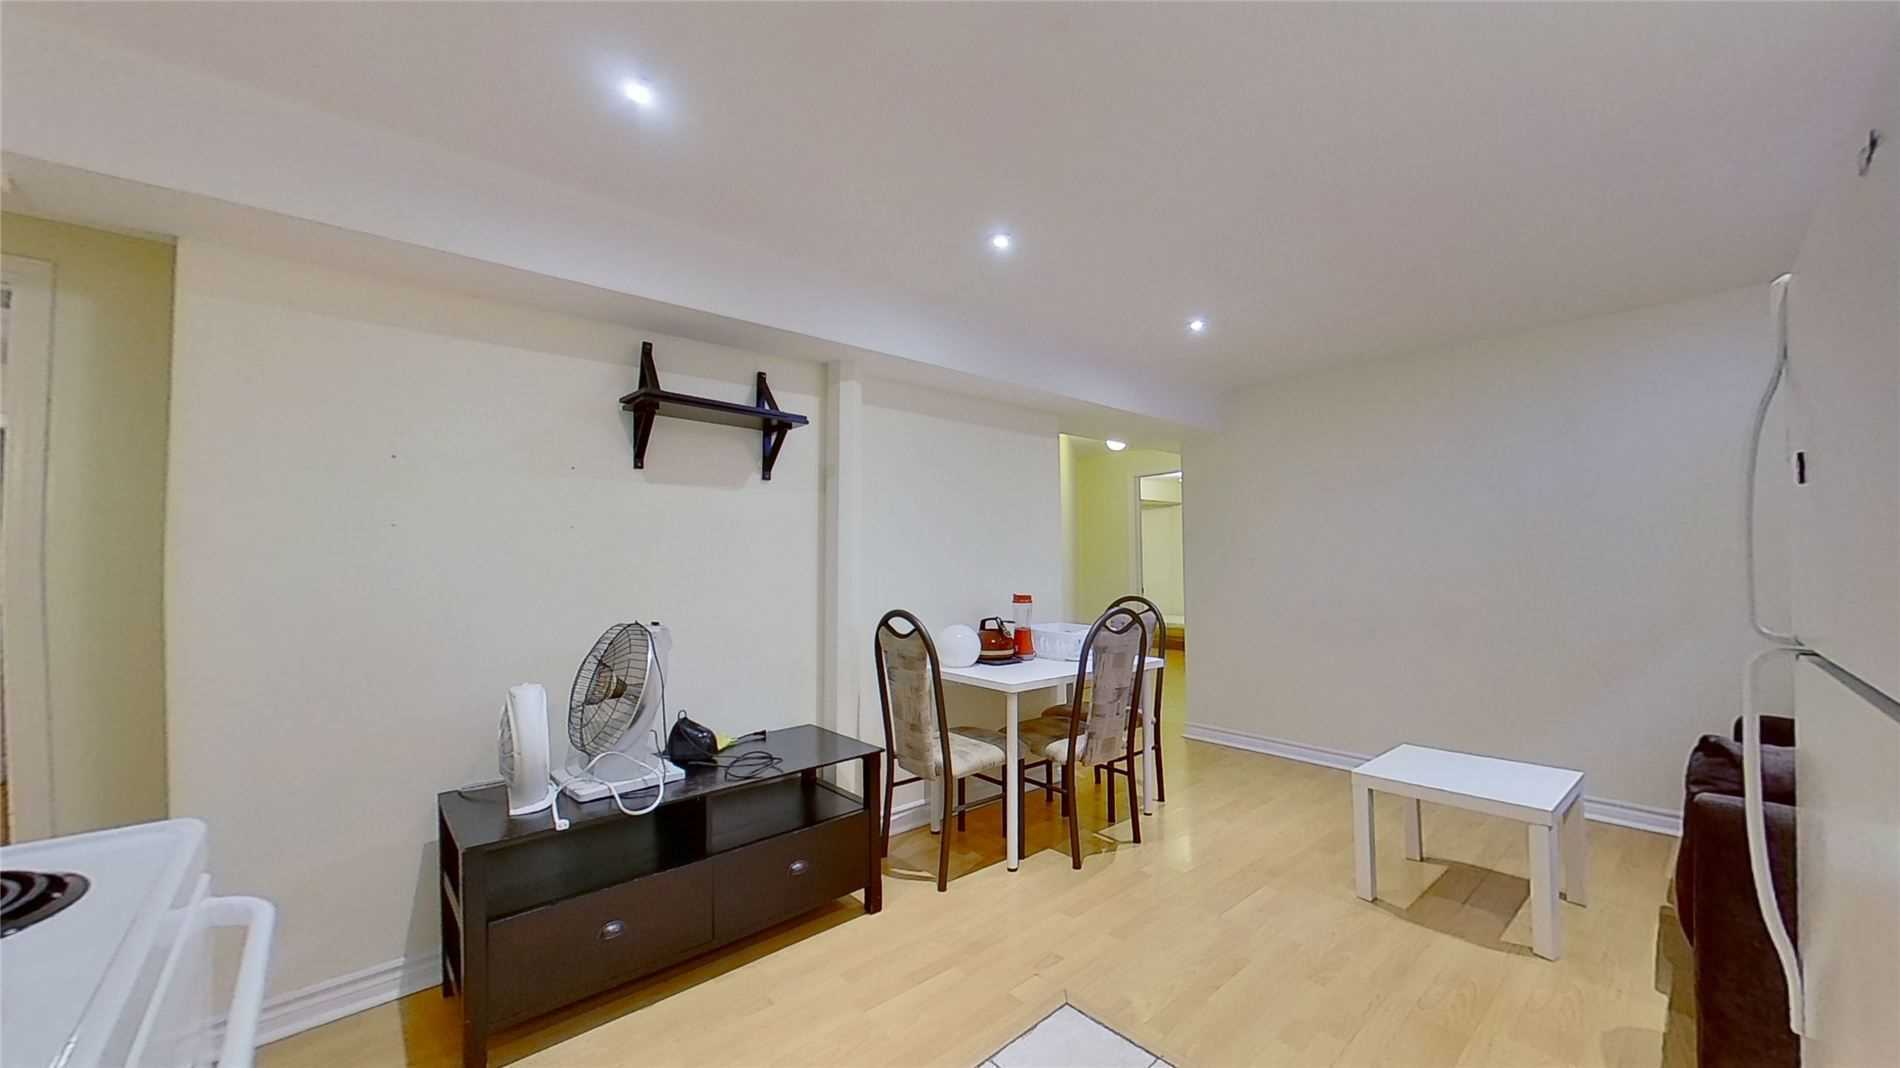 Image 10 of 16 showing inside of 2 Bedroom Detached 2-Storey for Lease at 5 Whalen Crt, Richmond Hill L4C9T5